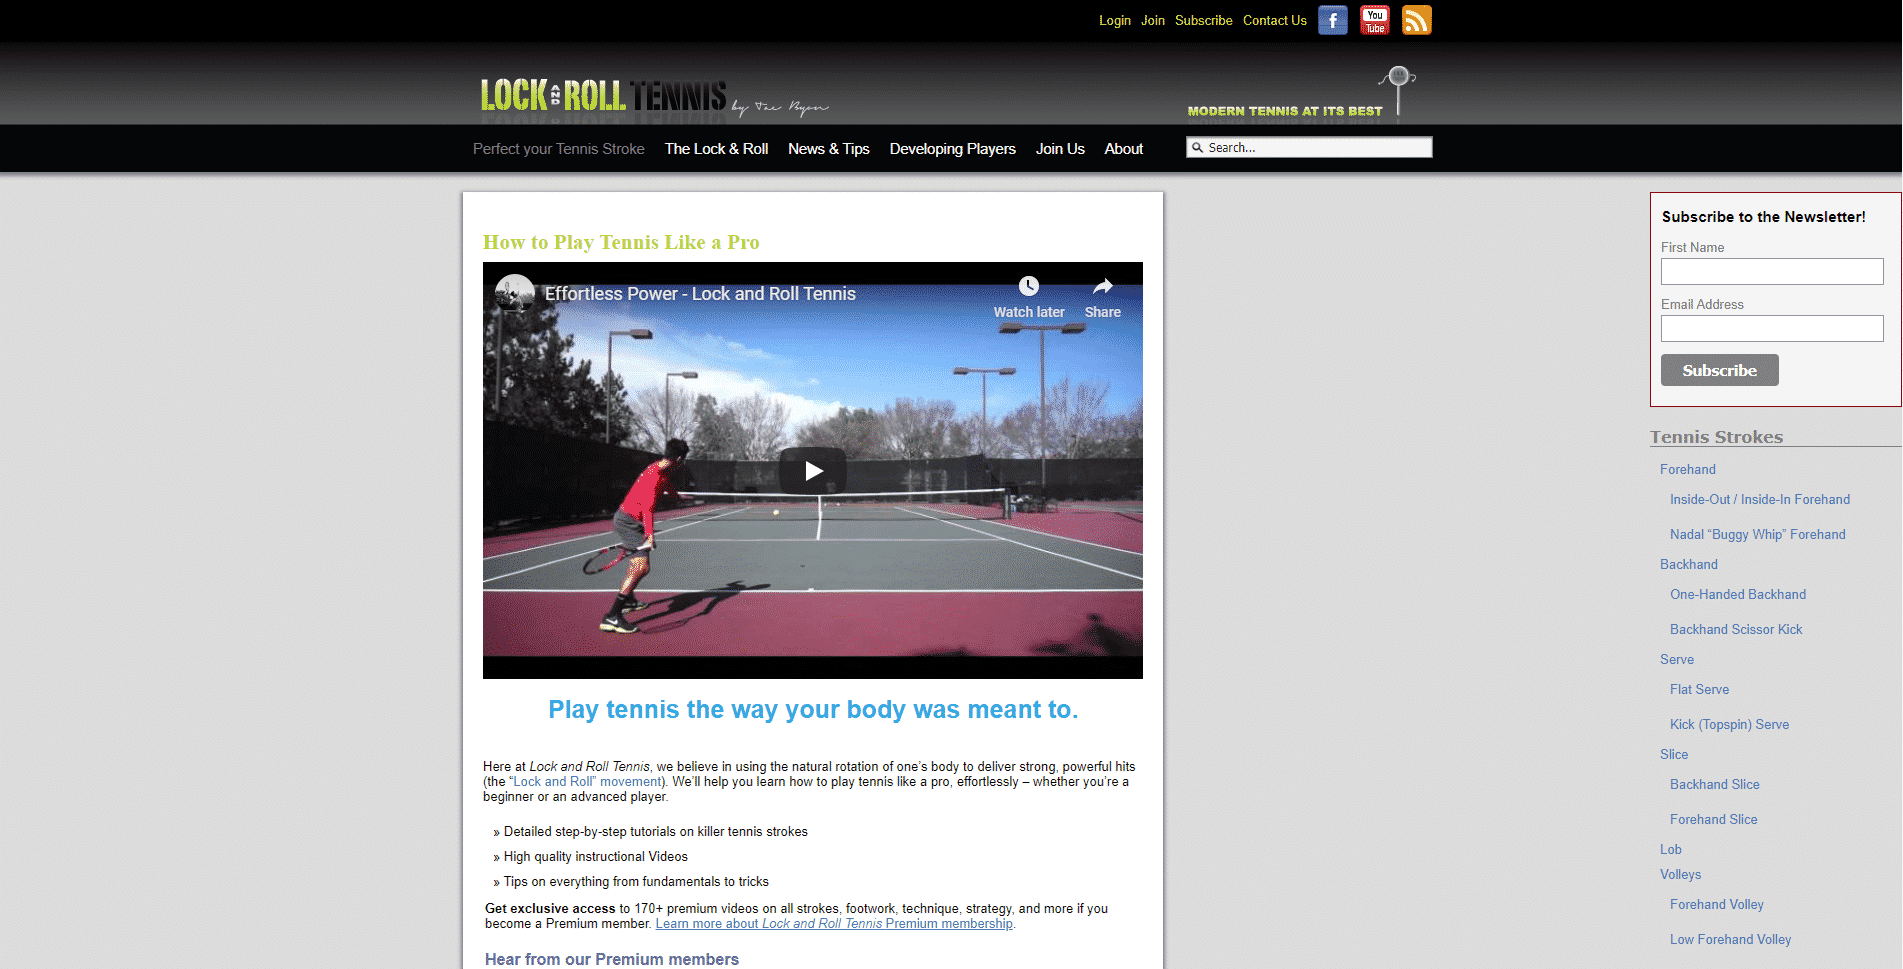 Lock and Roll Tennis Lessons